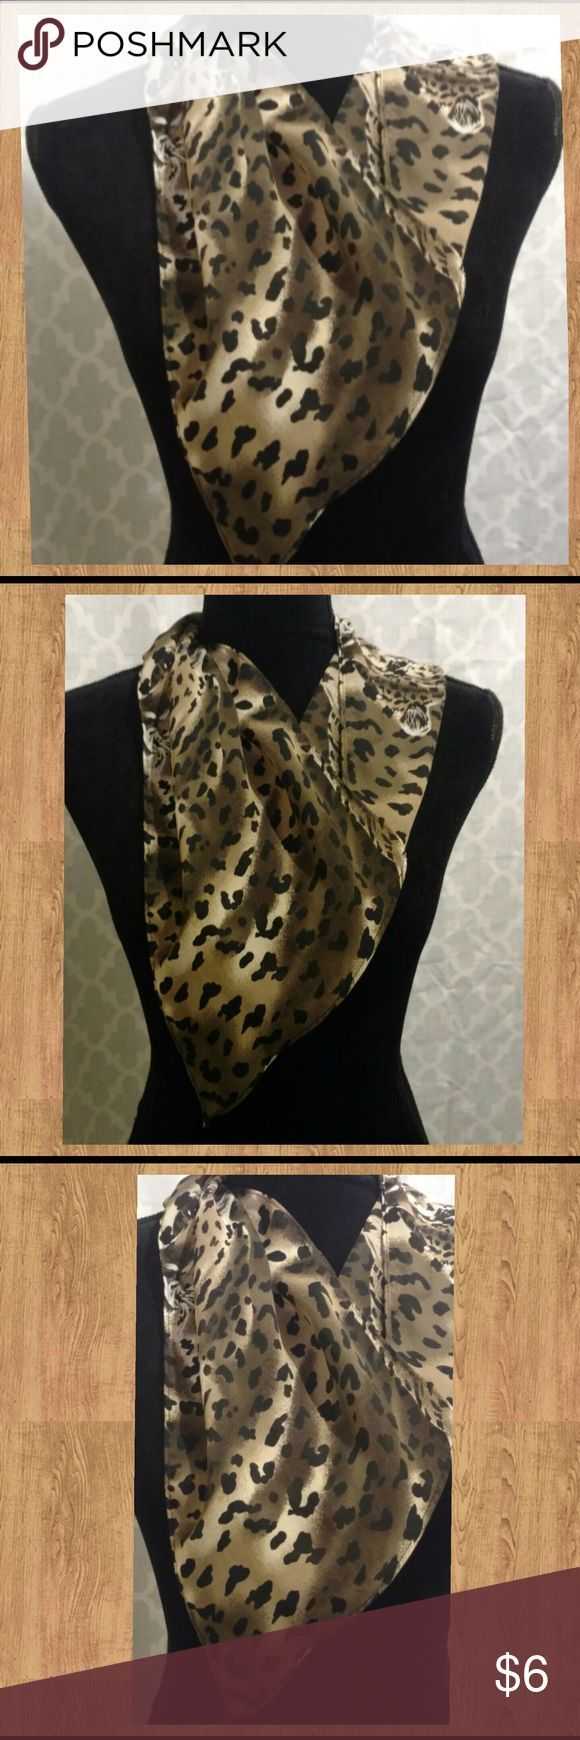 Cheetah Scarf Neck scarf. Cheetah print. Lightweight and versatile. ⬇️ 💵 Bundle and Save. 🎉 👗 Accessories Scarves & Wraps